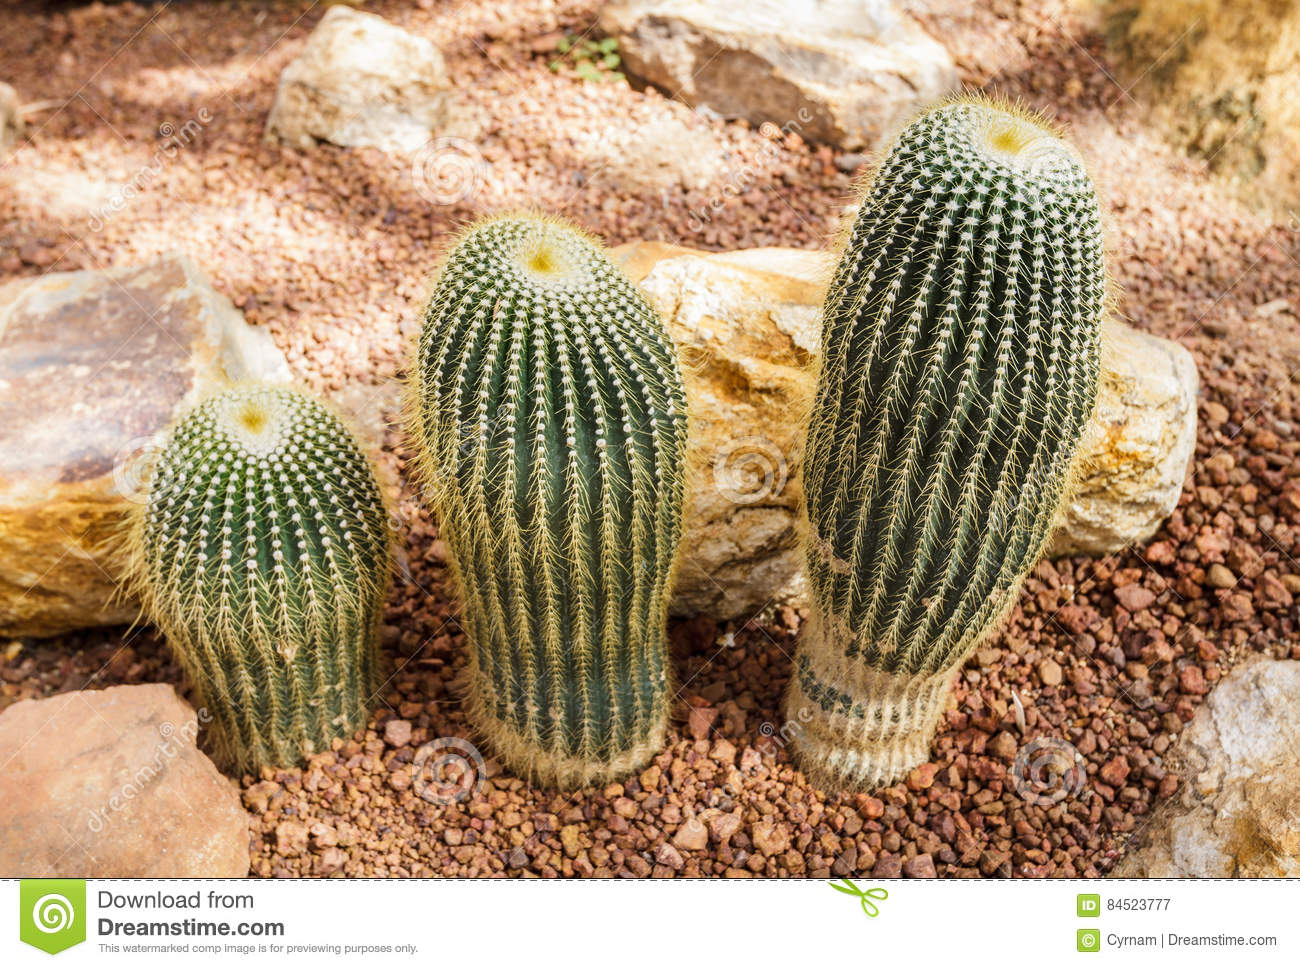 Beautiful cactus collection in botanical rocky garden, phallic shaped, decor and background